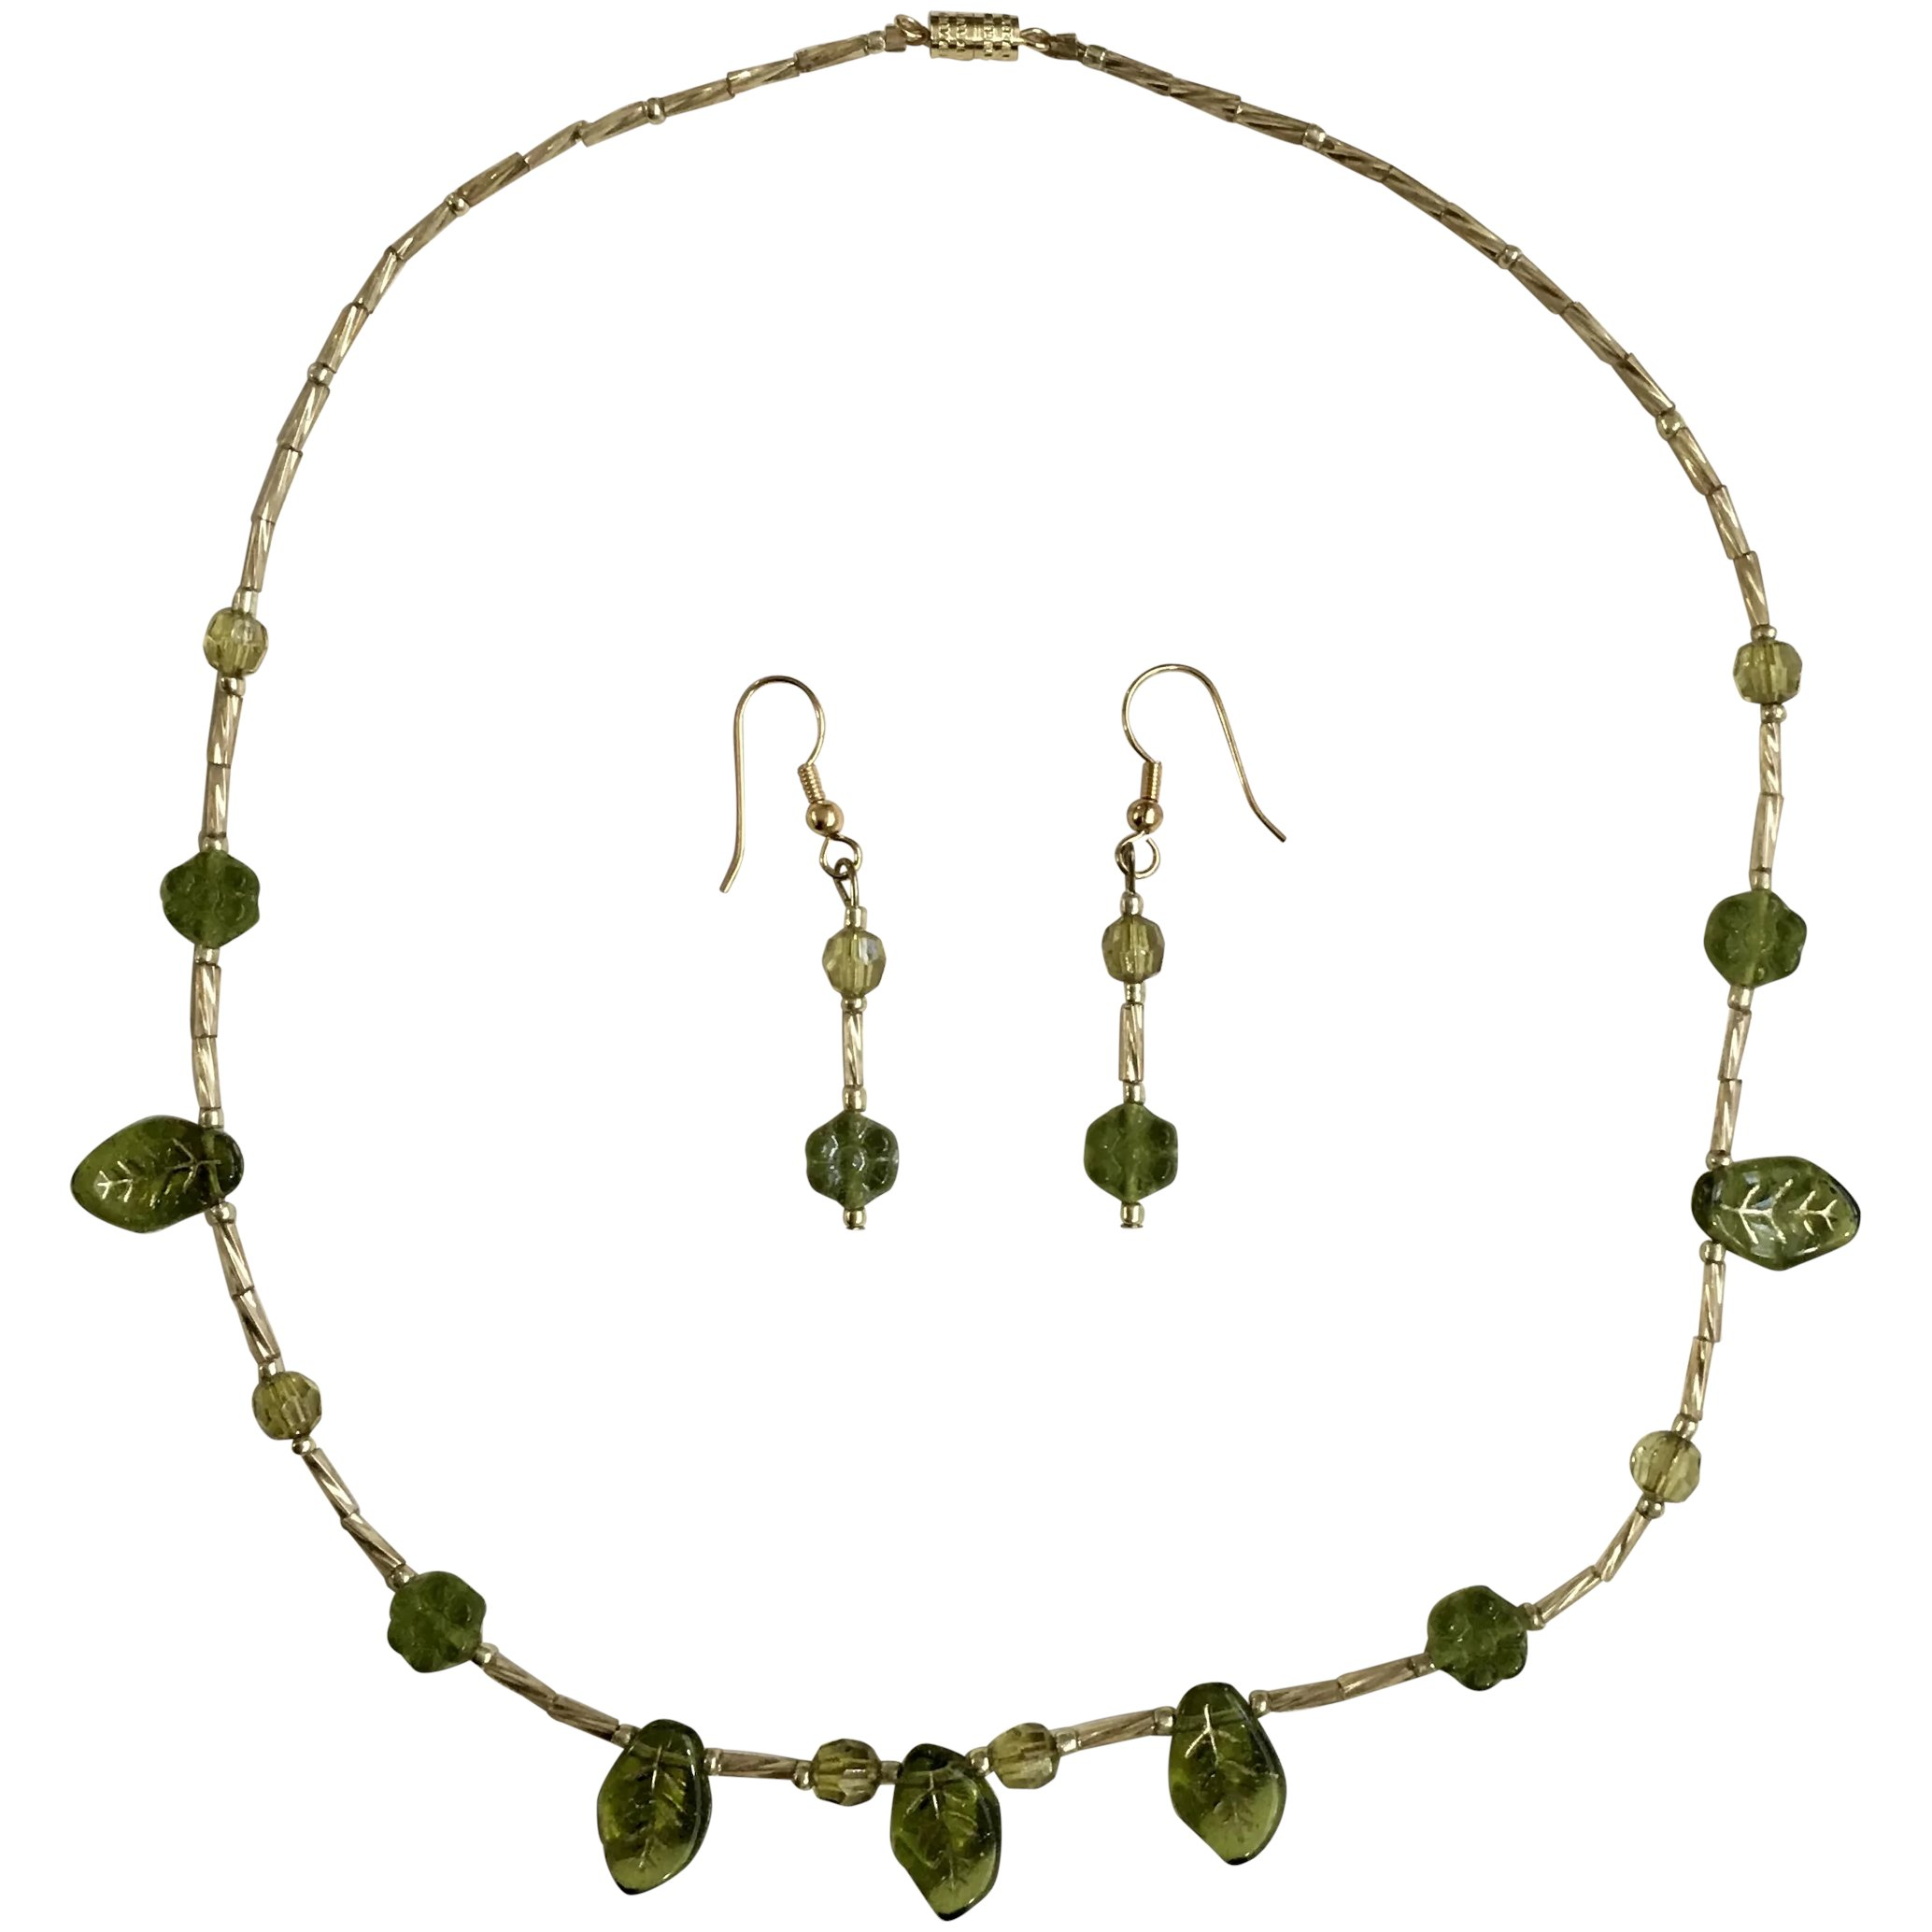 Gold Tone Segmented Necklace with Matching Clip Earrings